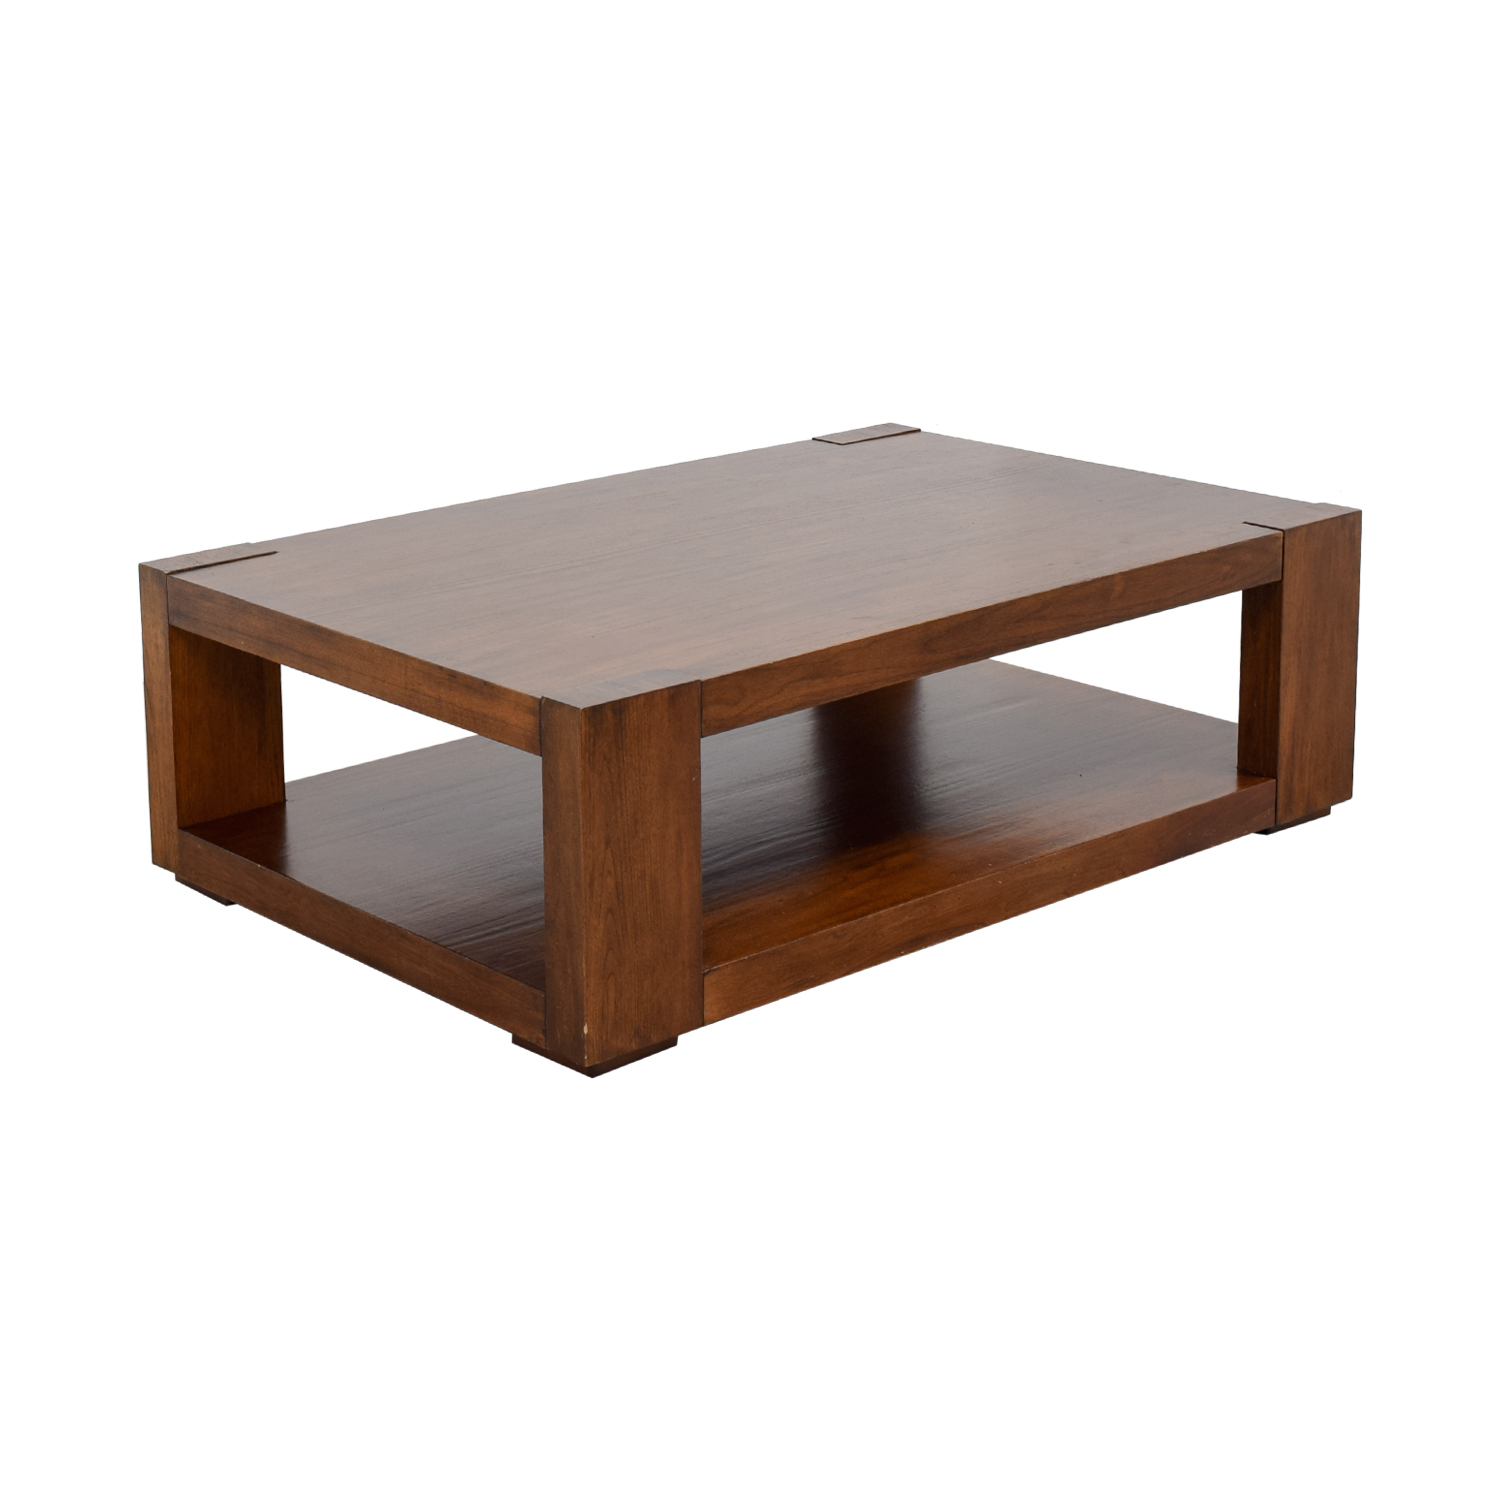 Crate & Barrel Lodge Coffee Table / Tables